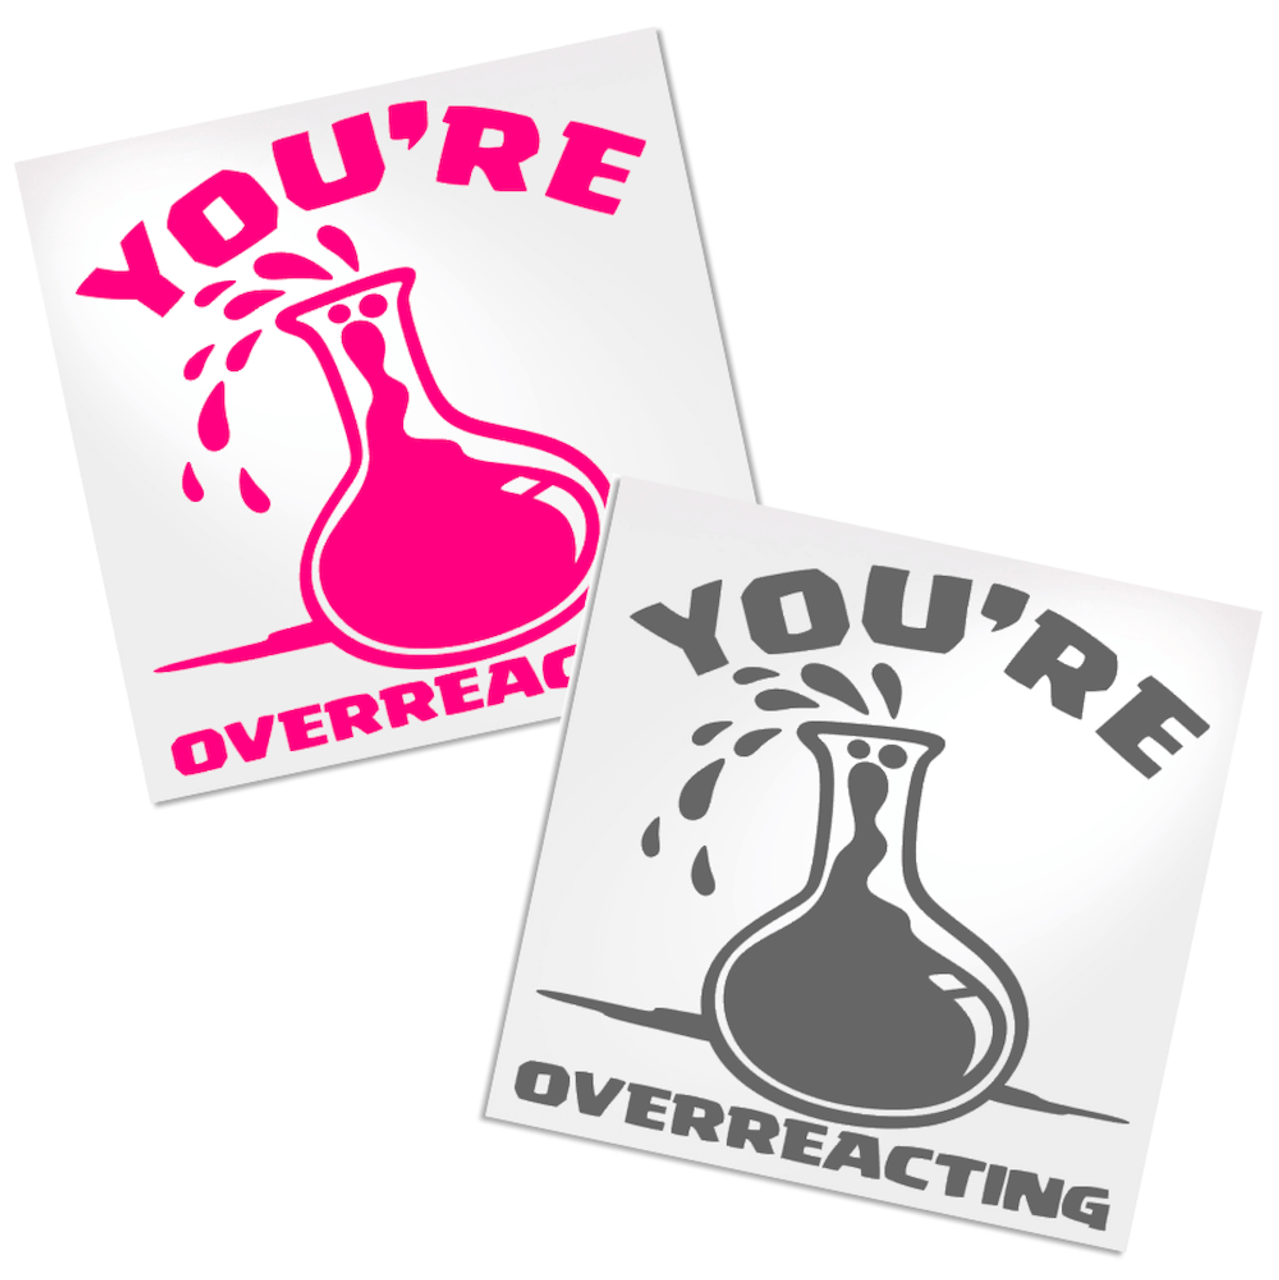 a79065fe0 You're overreacting decal. Funny decal for any cup, tumbler, water bottle